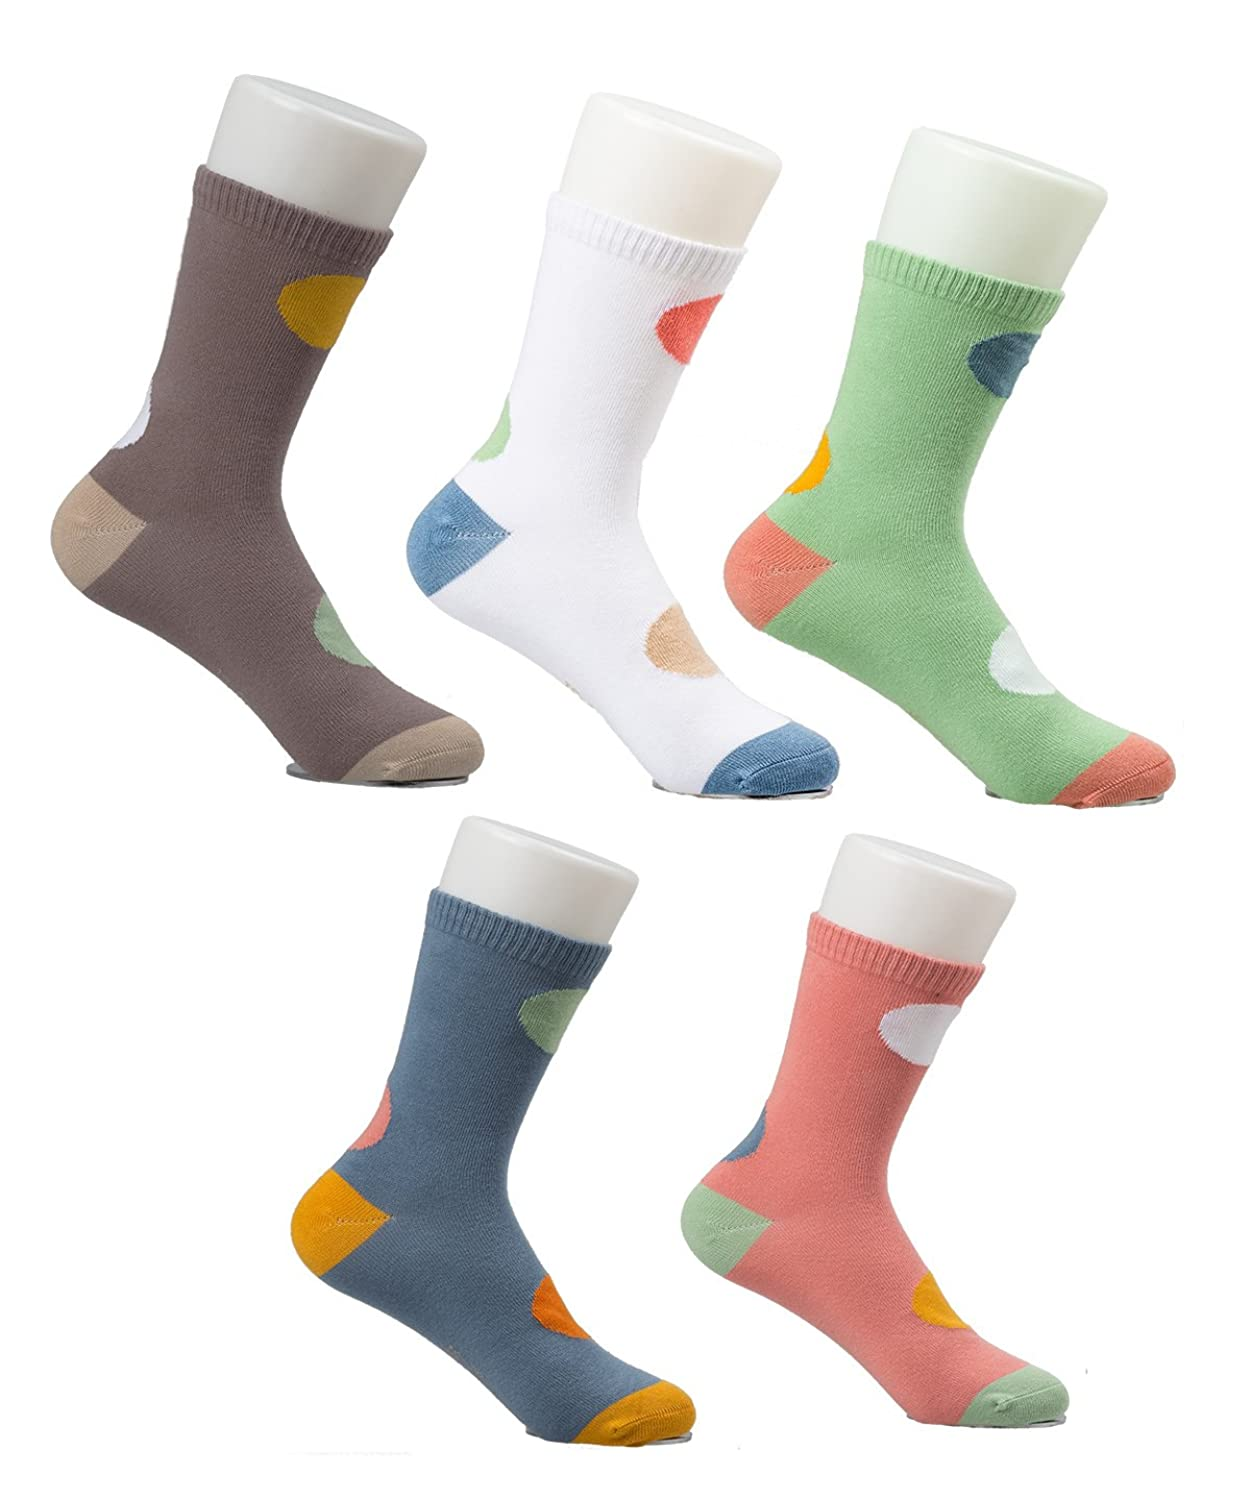 Amazon.com: Maiwa Cotton No Seams Crew Socks for Kids Boys Girls 5 Pack: Clothing